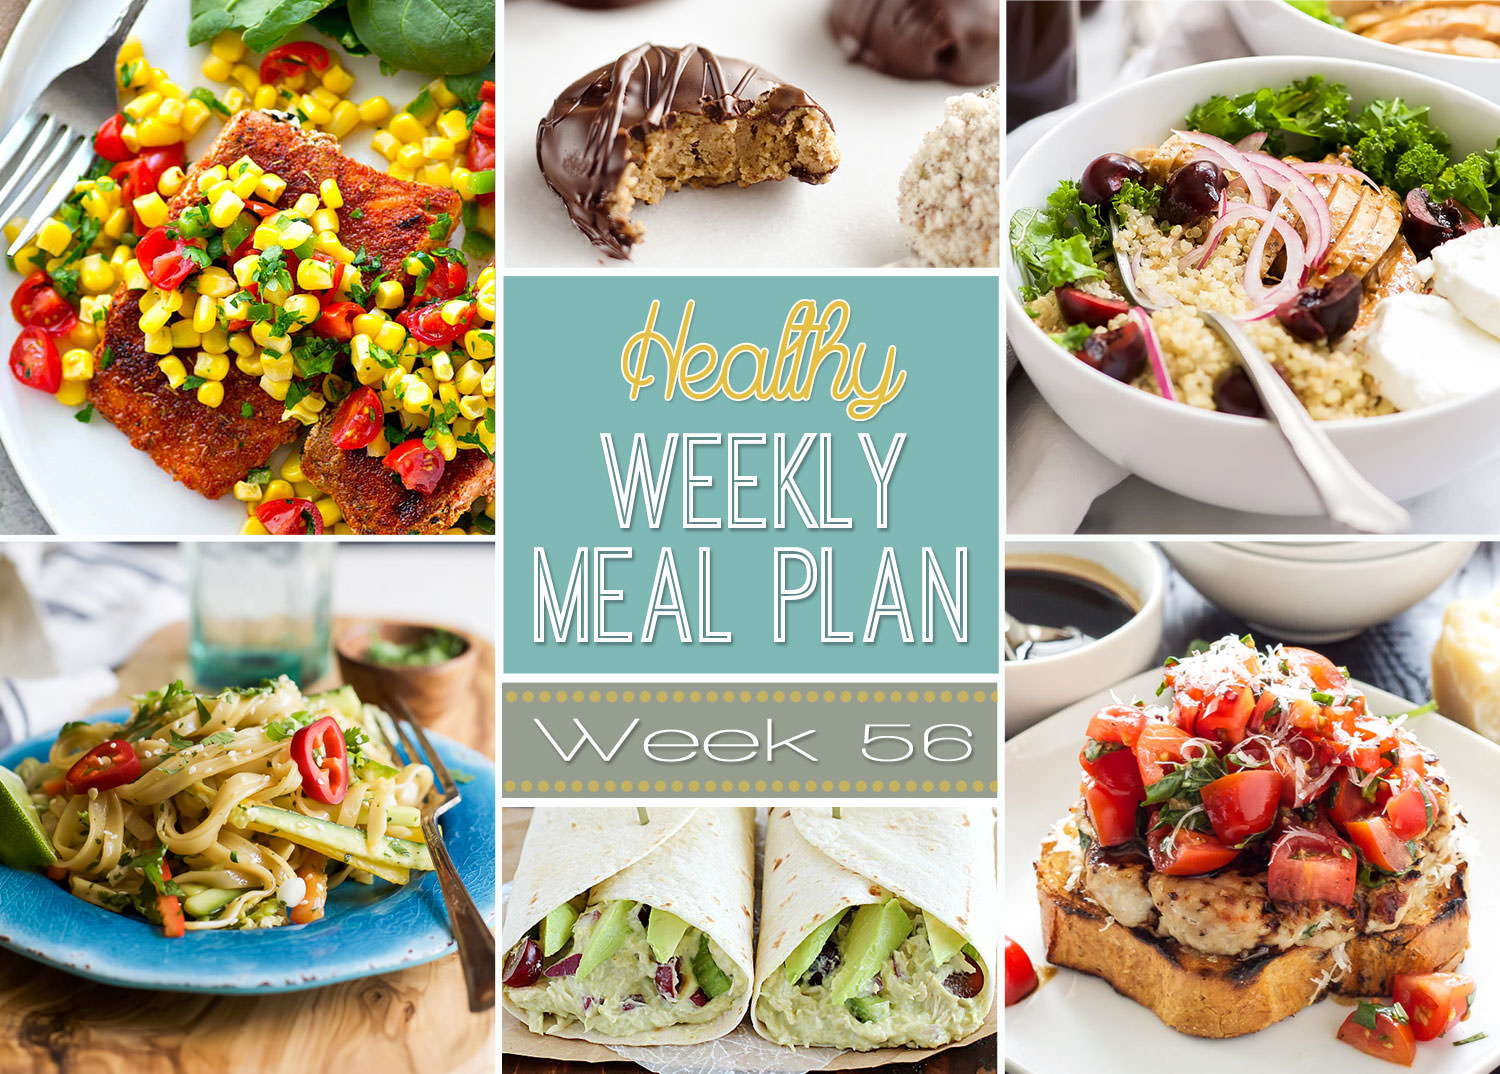 Healthy meal plan week 56 has Bruschetta Burgers, Creamy Avocado Chicken Wraps and Blackened Grilled Salmon with a kickin corn salsa. Yum!